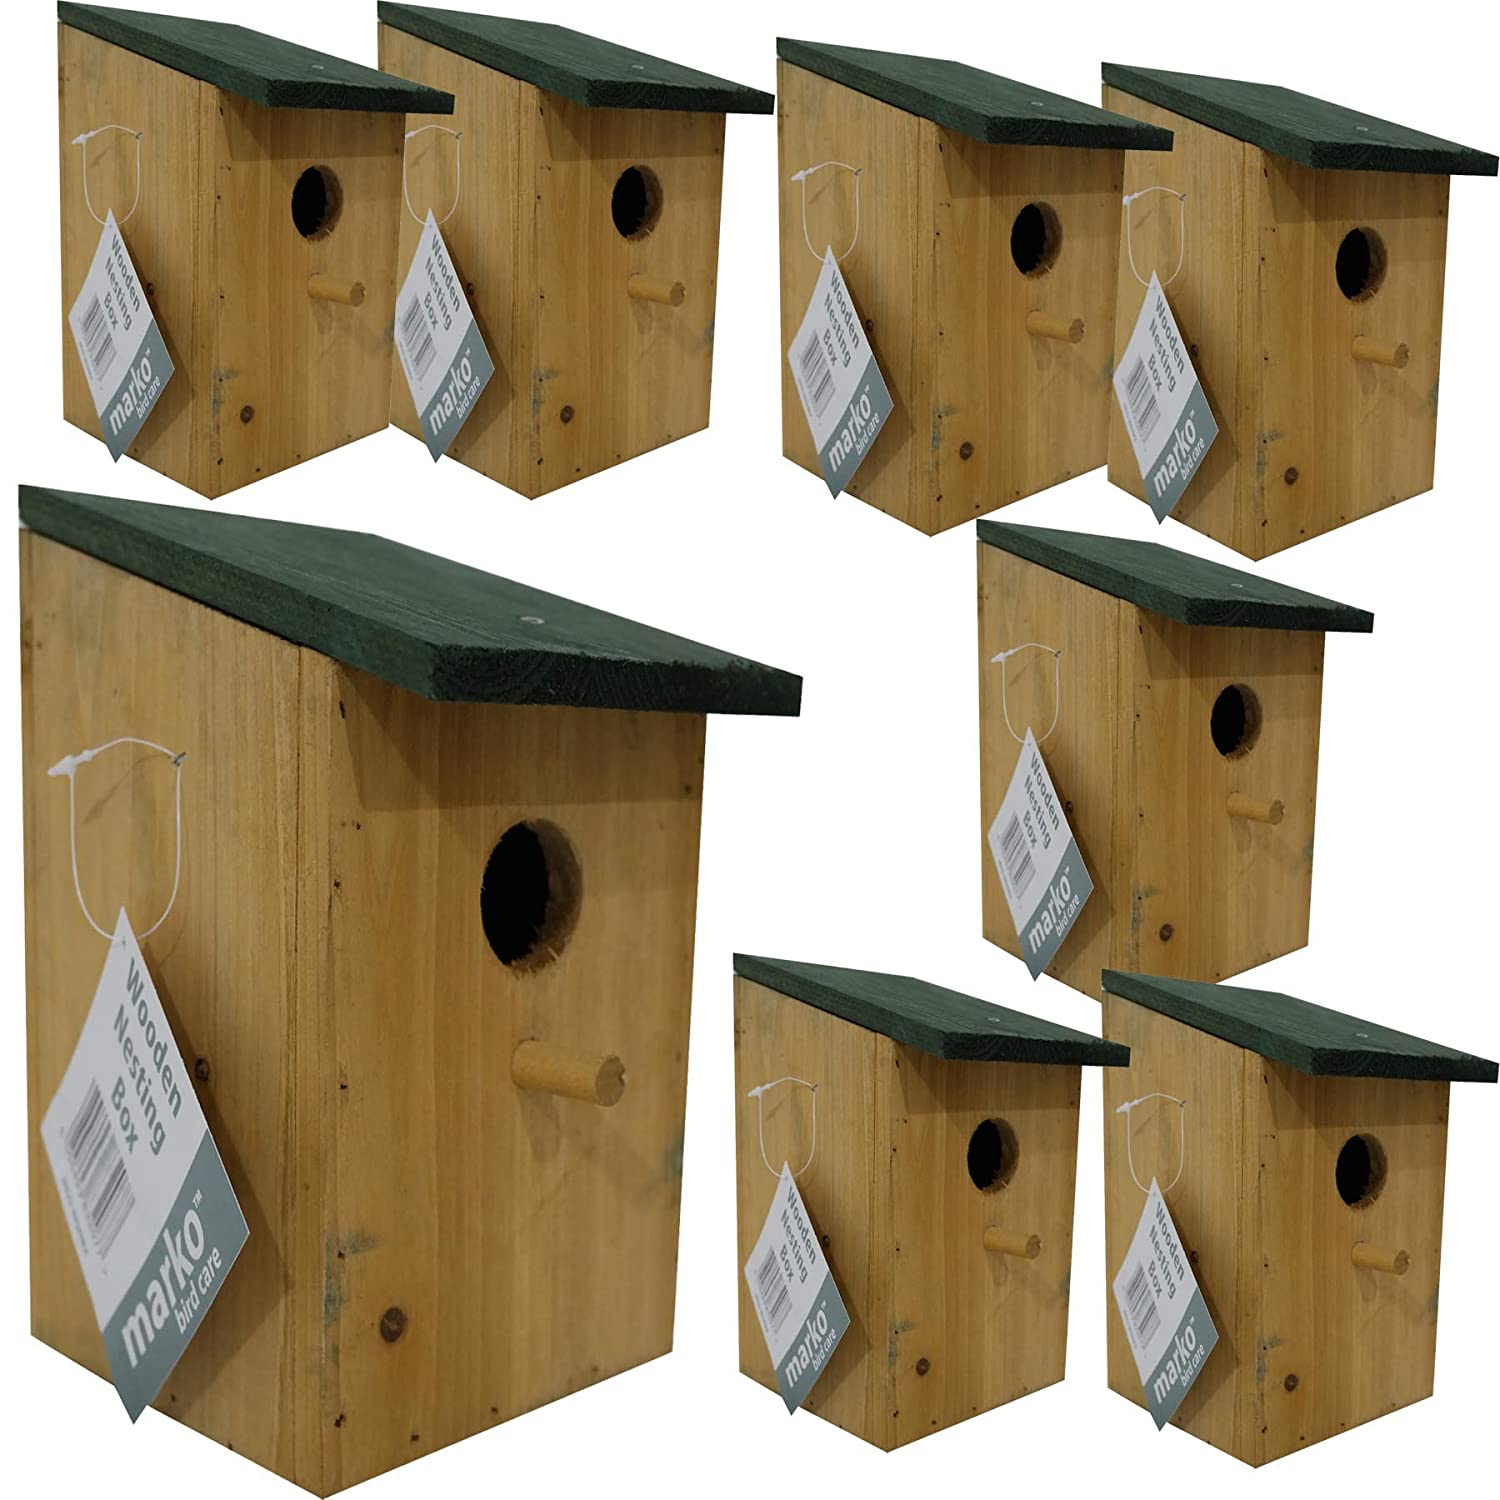 8 pc Traditional Wooden Nesting Boxes Bird Nest Wood House Small Birds Bluetit Marko Bird Care